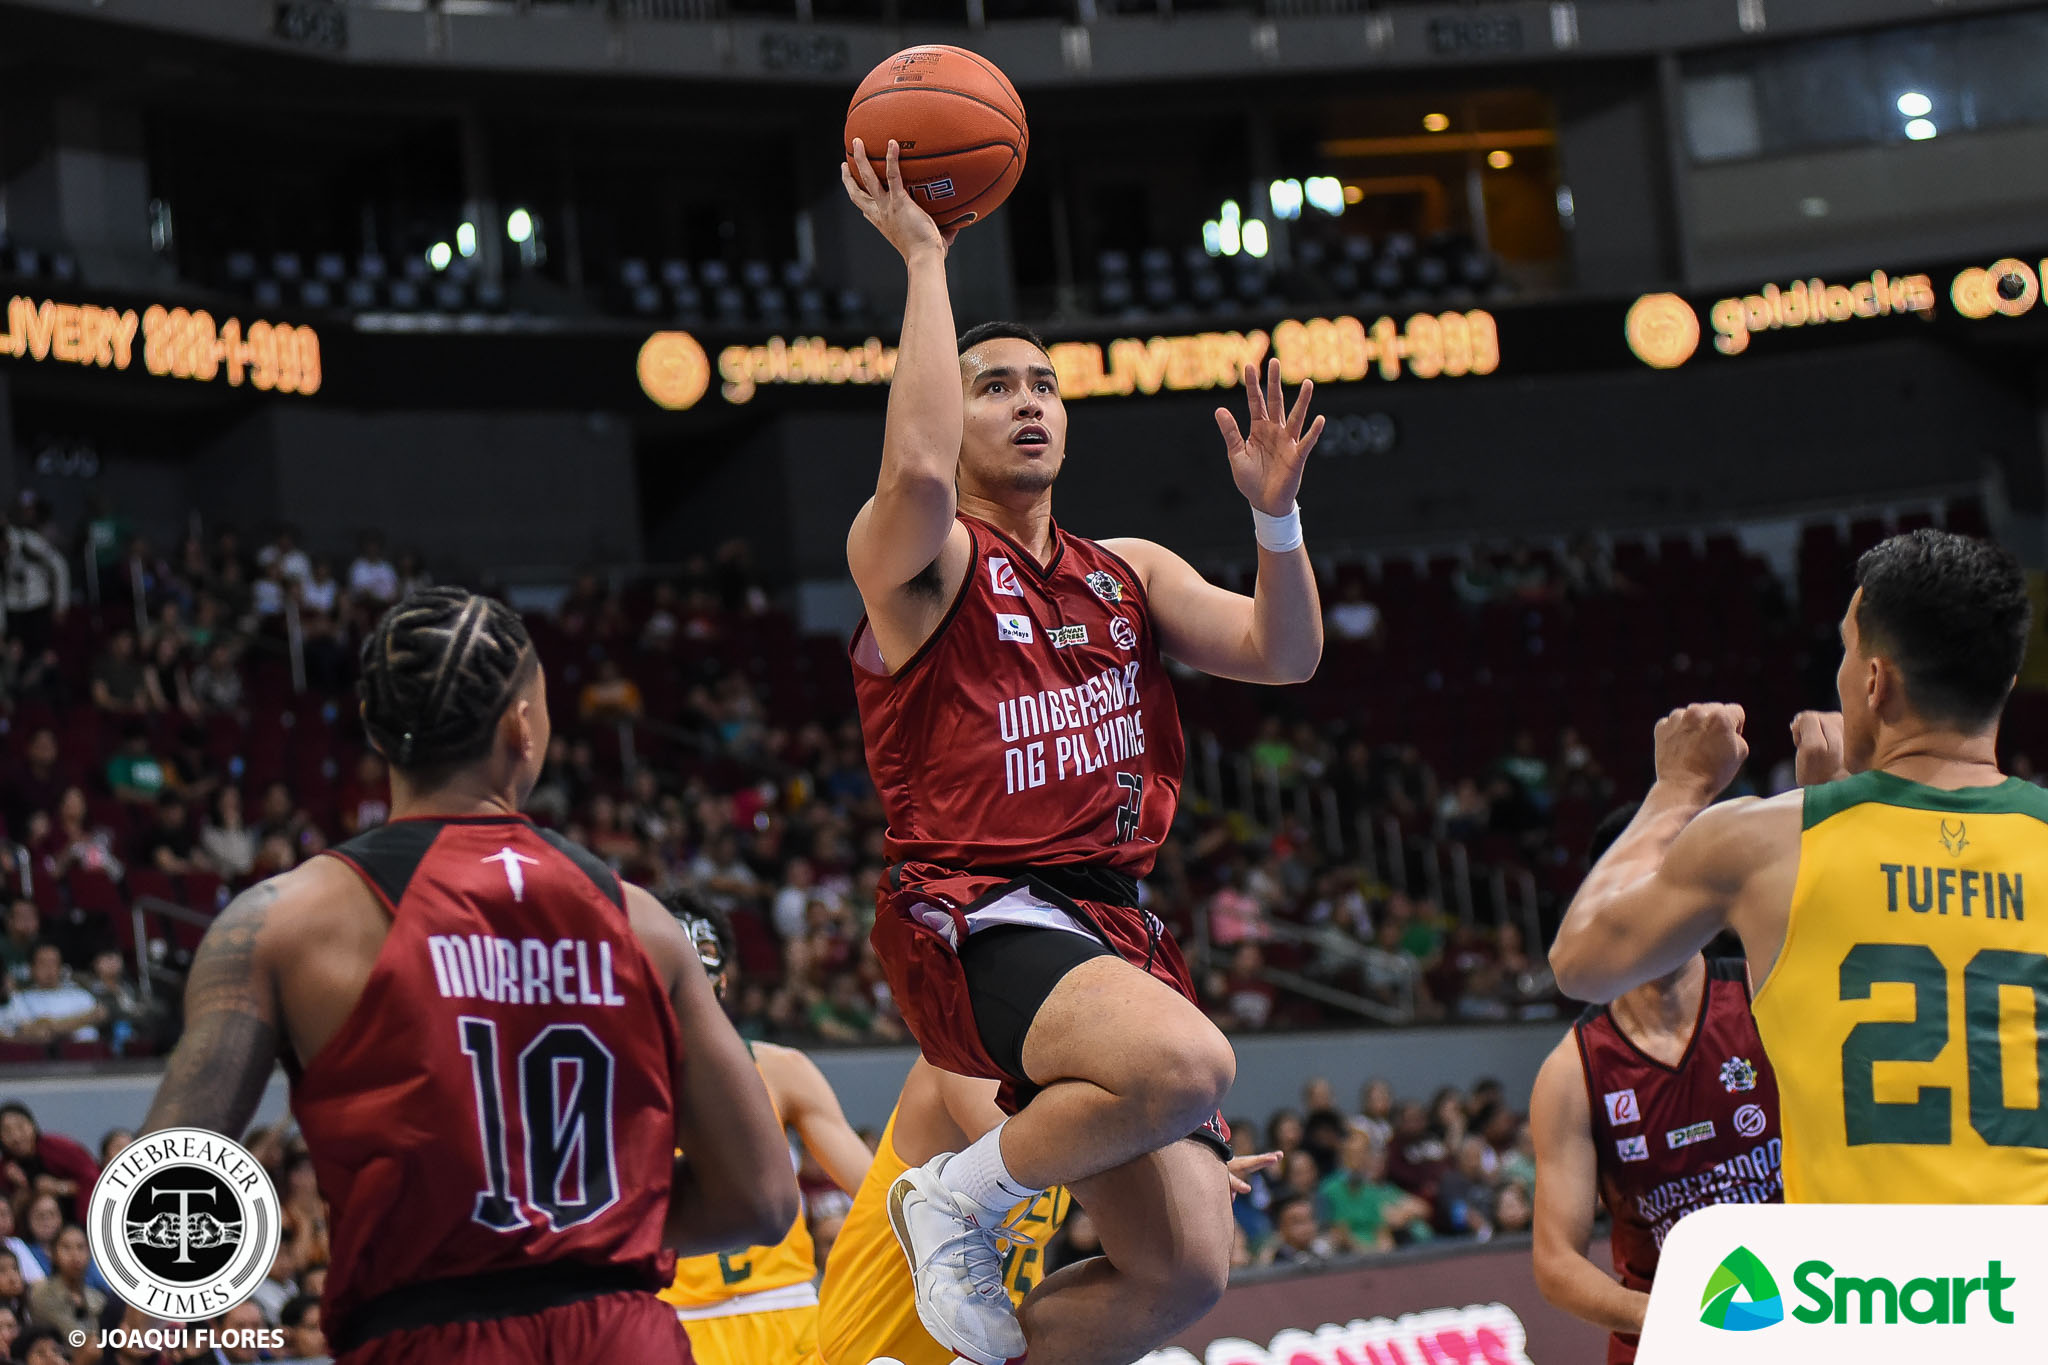 UAAP-82-MBB-FEU-vs.-UP-Javi-Gomez-De-Liano-7927 Javi GDL makes tough decision to forgo final year in UP Basketball News UAAP UP  - philippine sports news